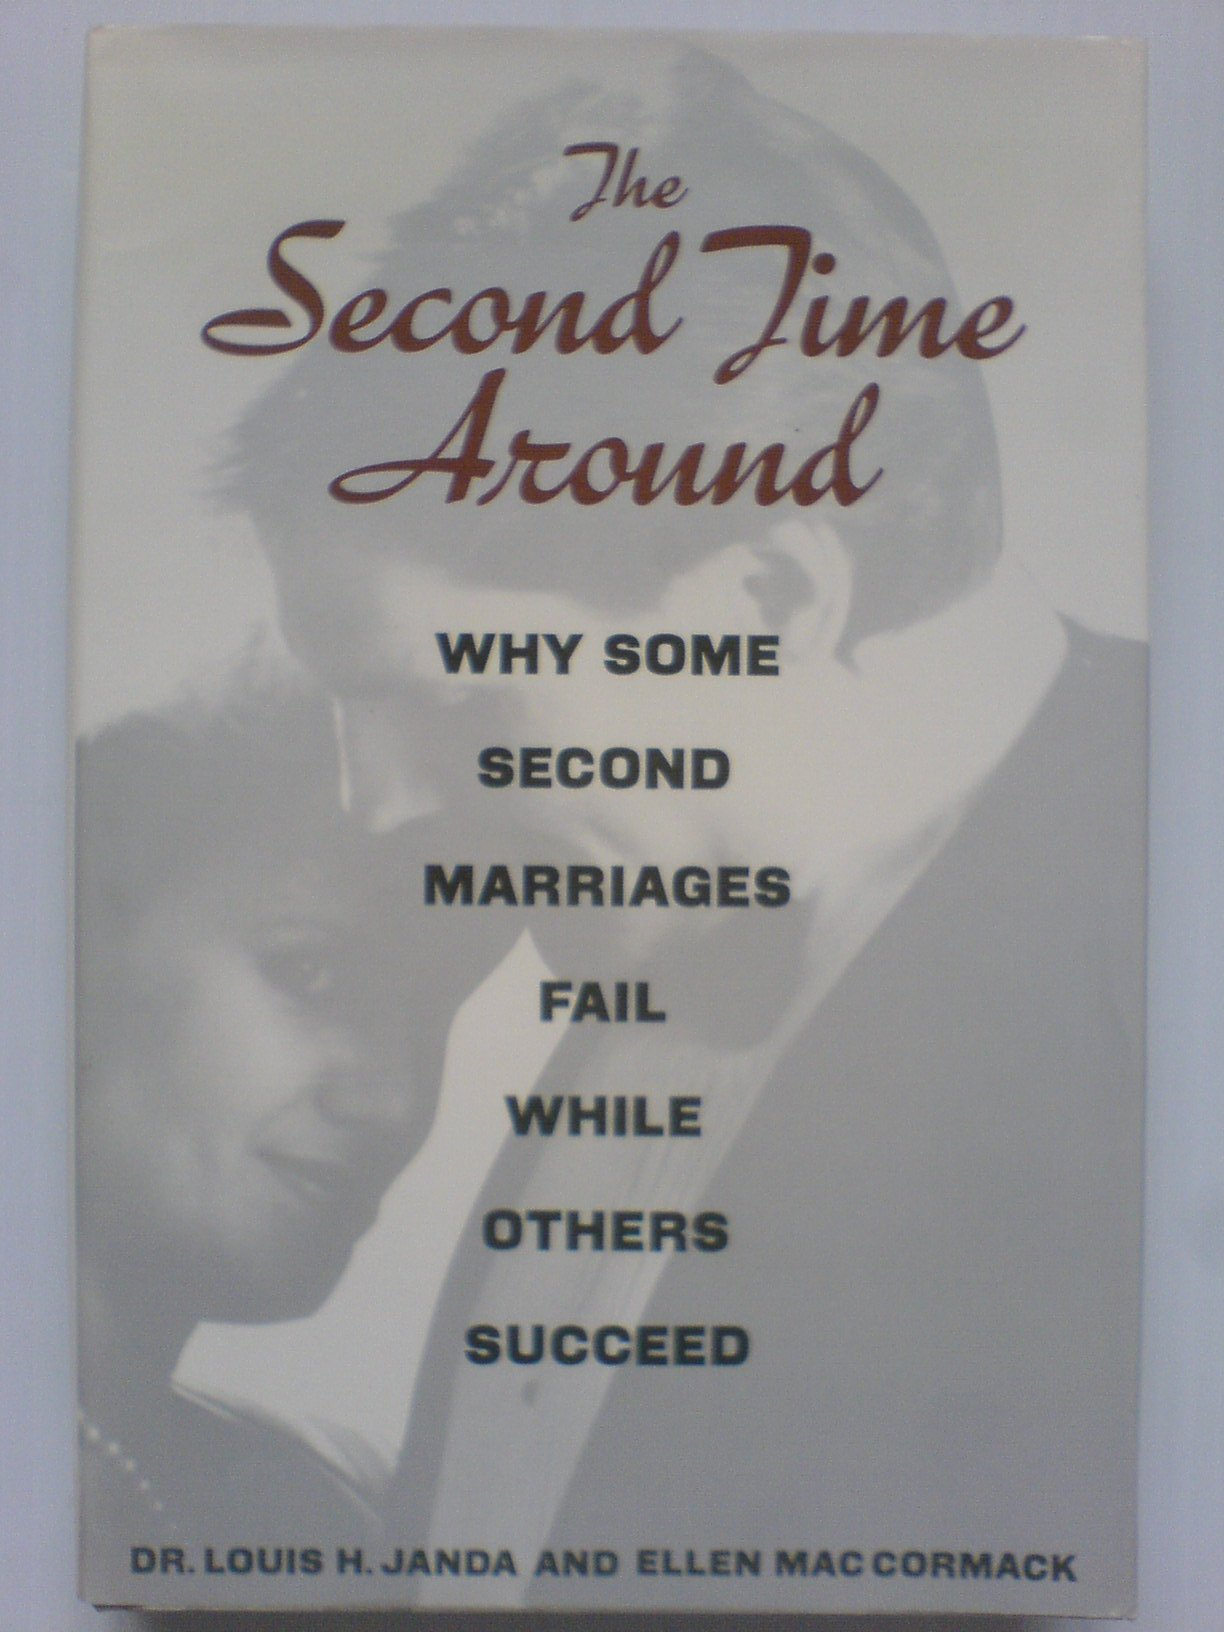 Second marriages fail